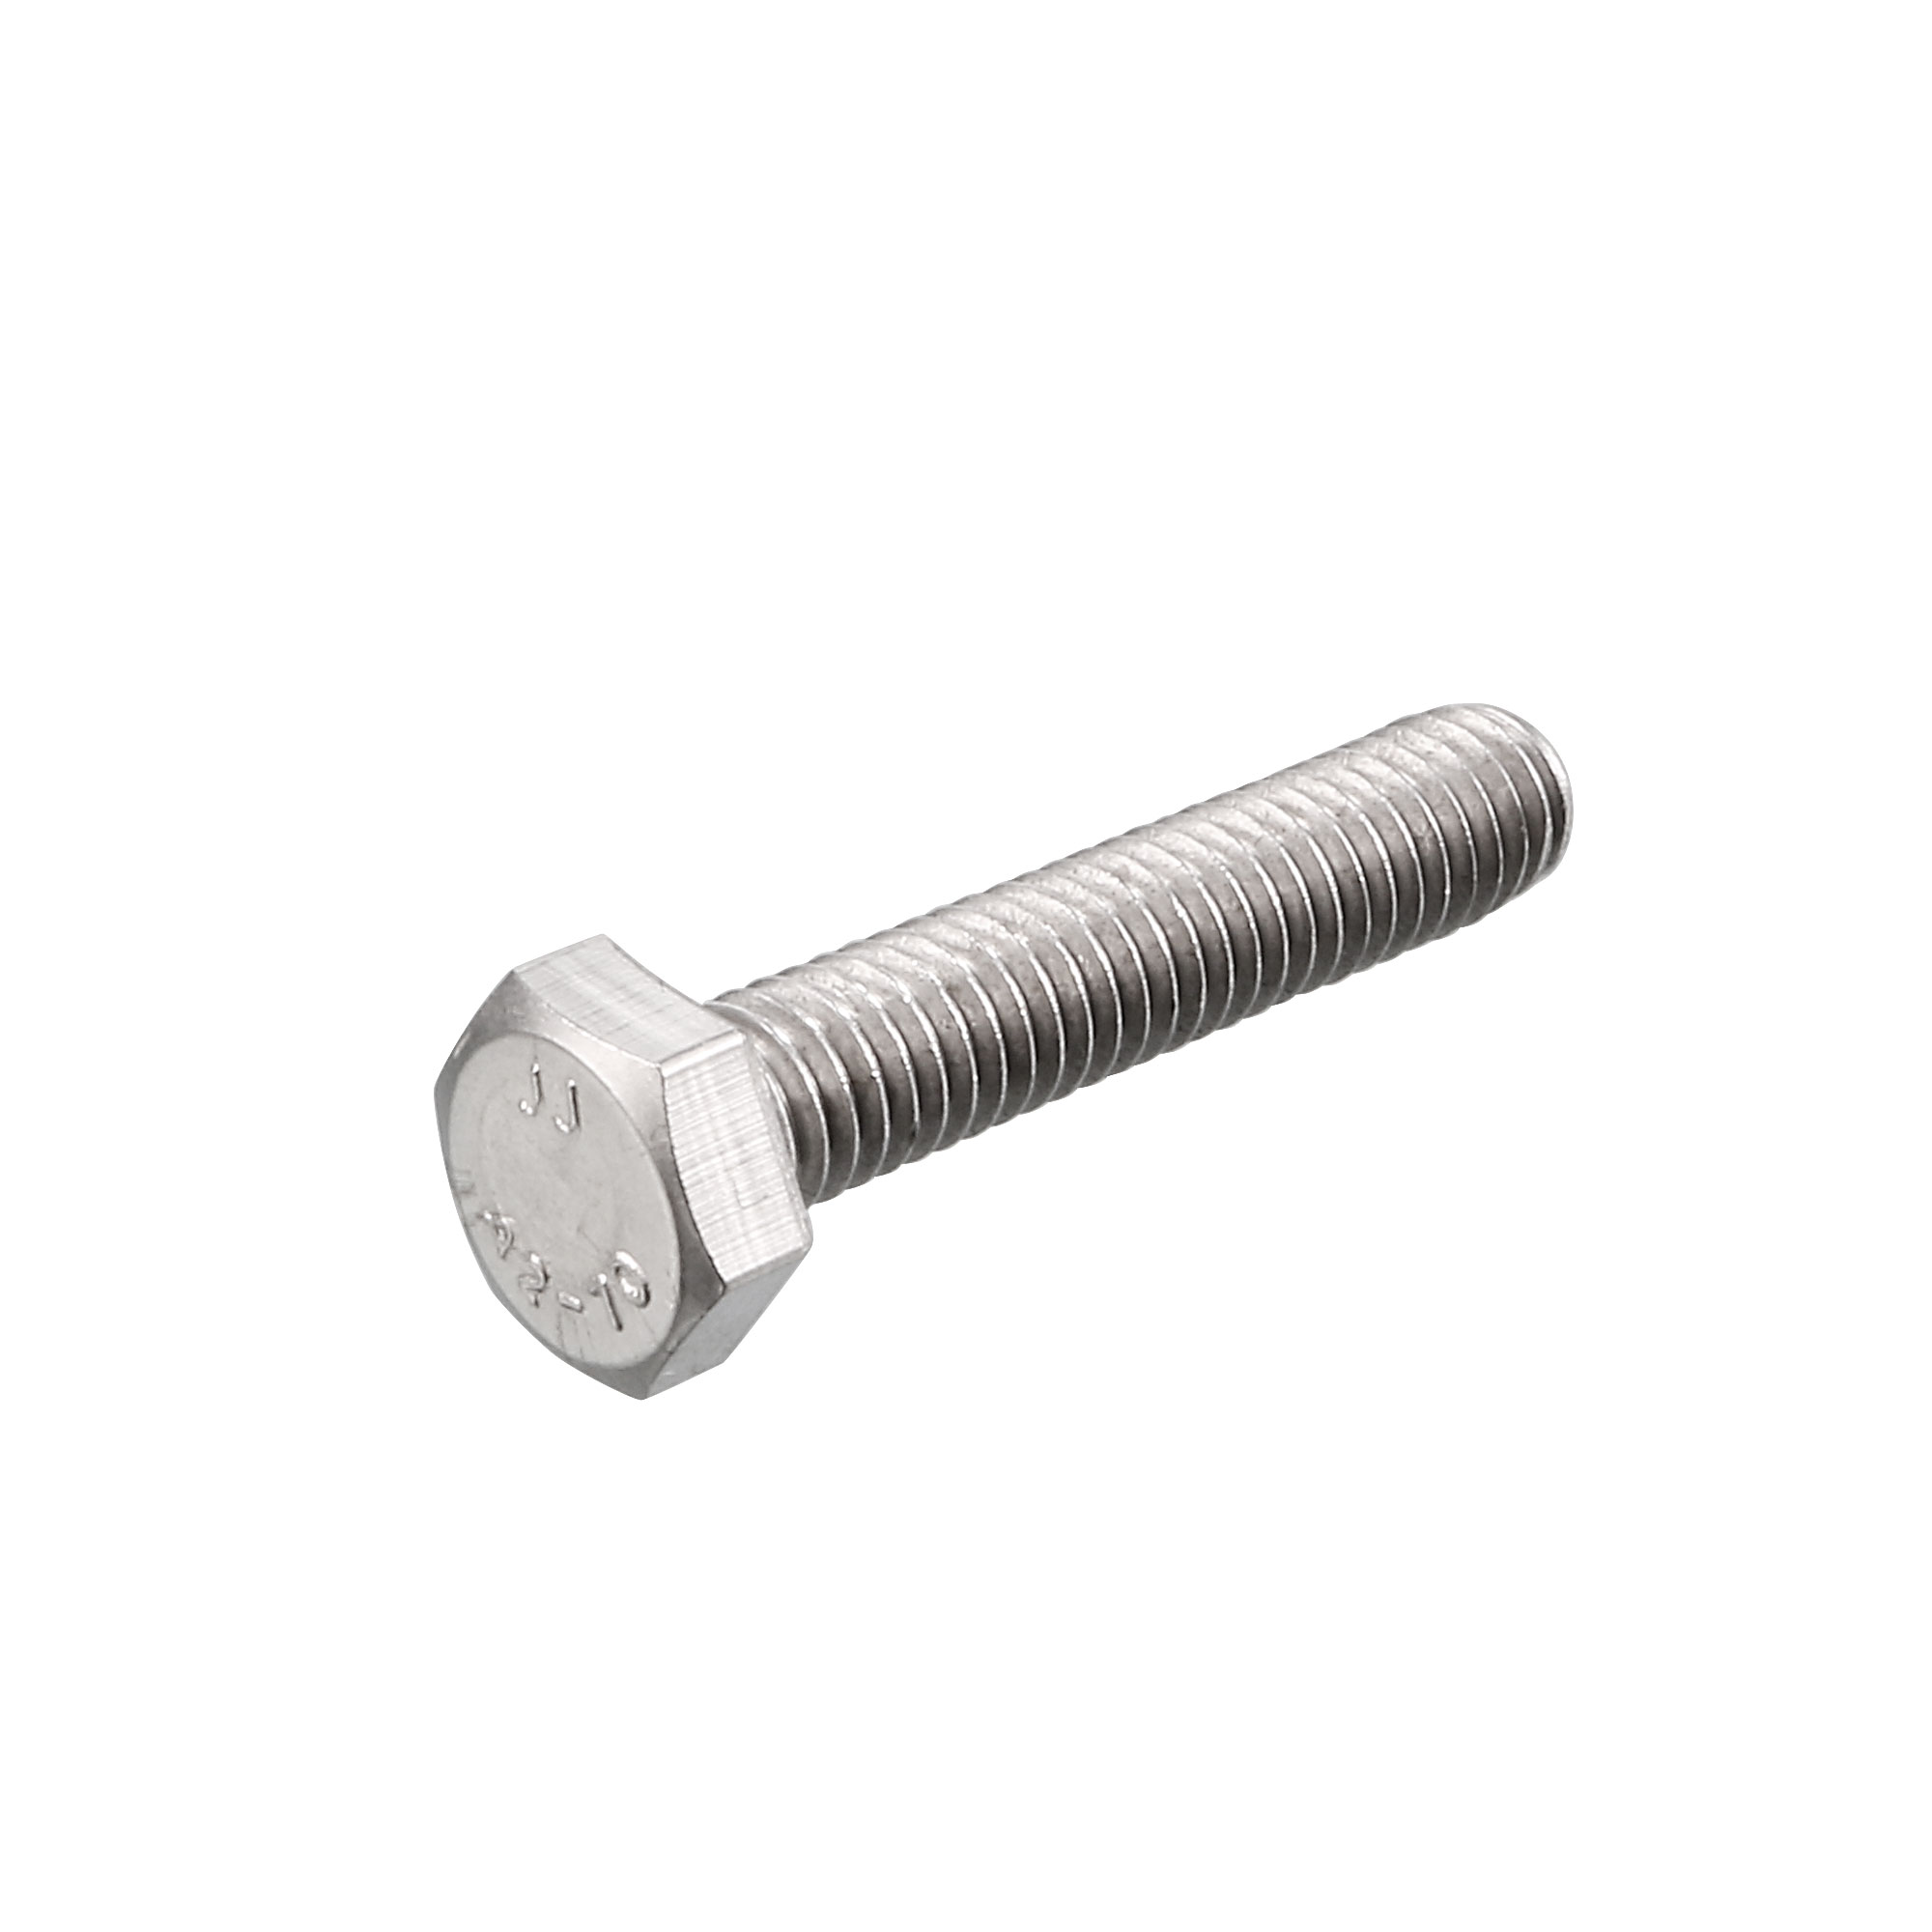 M6 x 30mm Metric 304 Stainless Steel Fully Threaded Hex Head Screw Bolt 20 Pcs